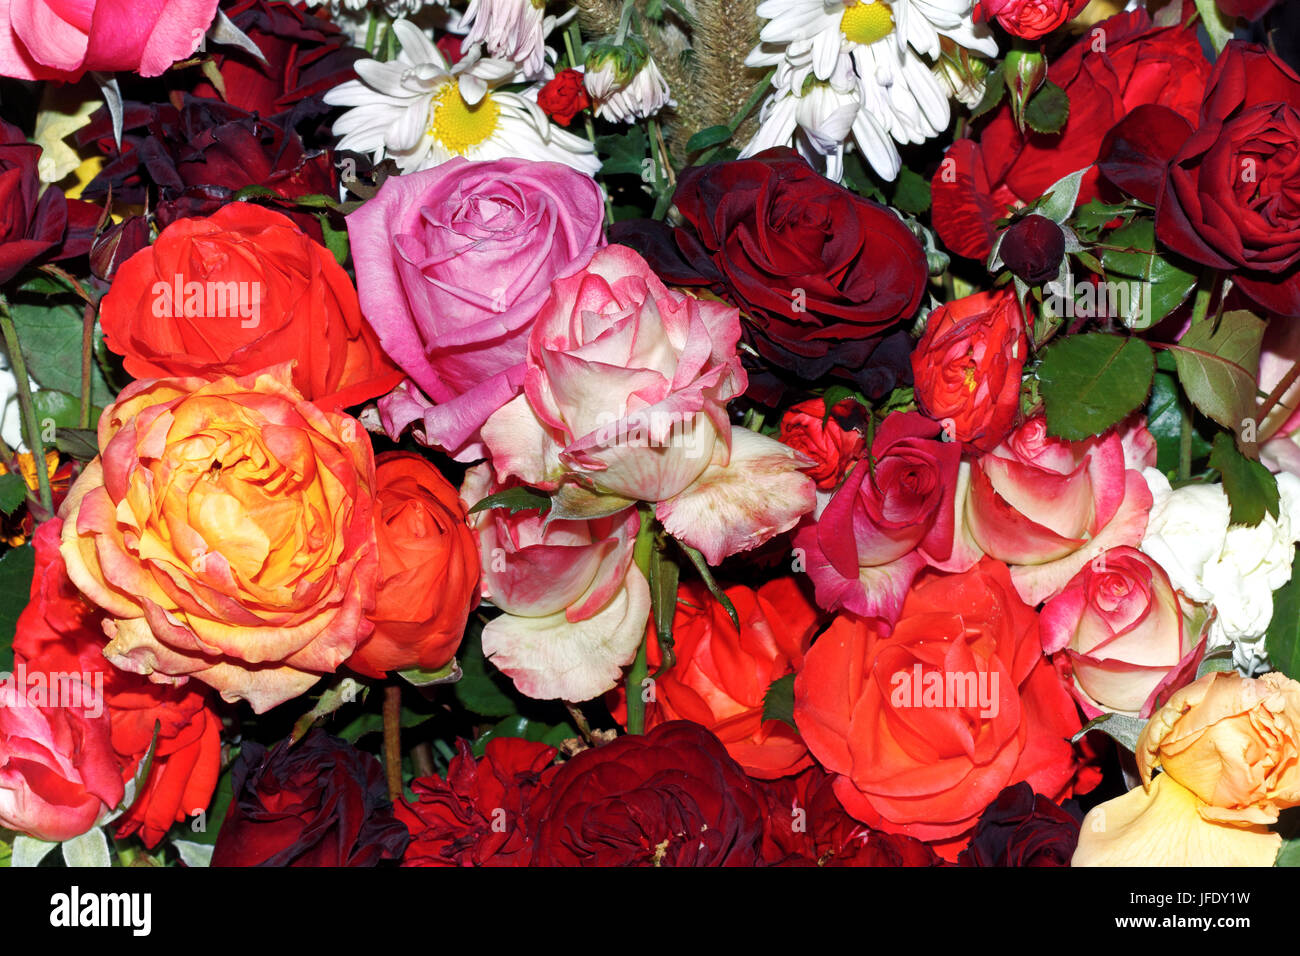 Big bouquet of roses - Stock Image